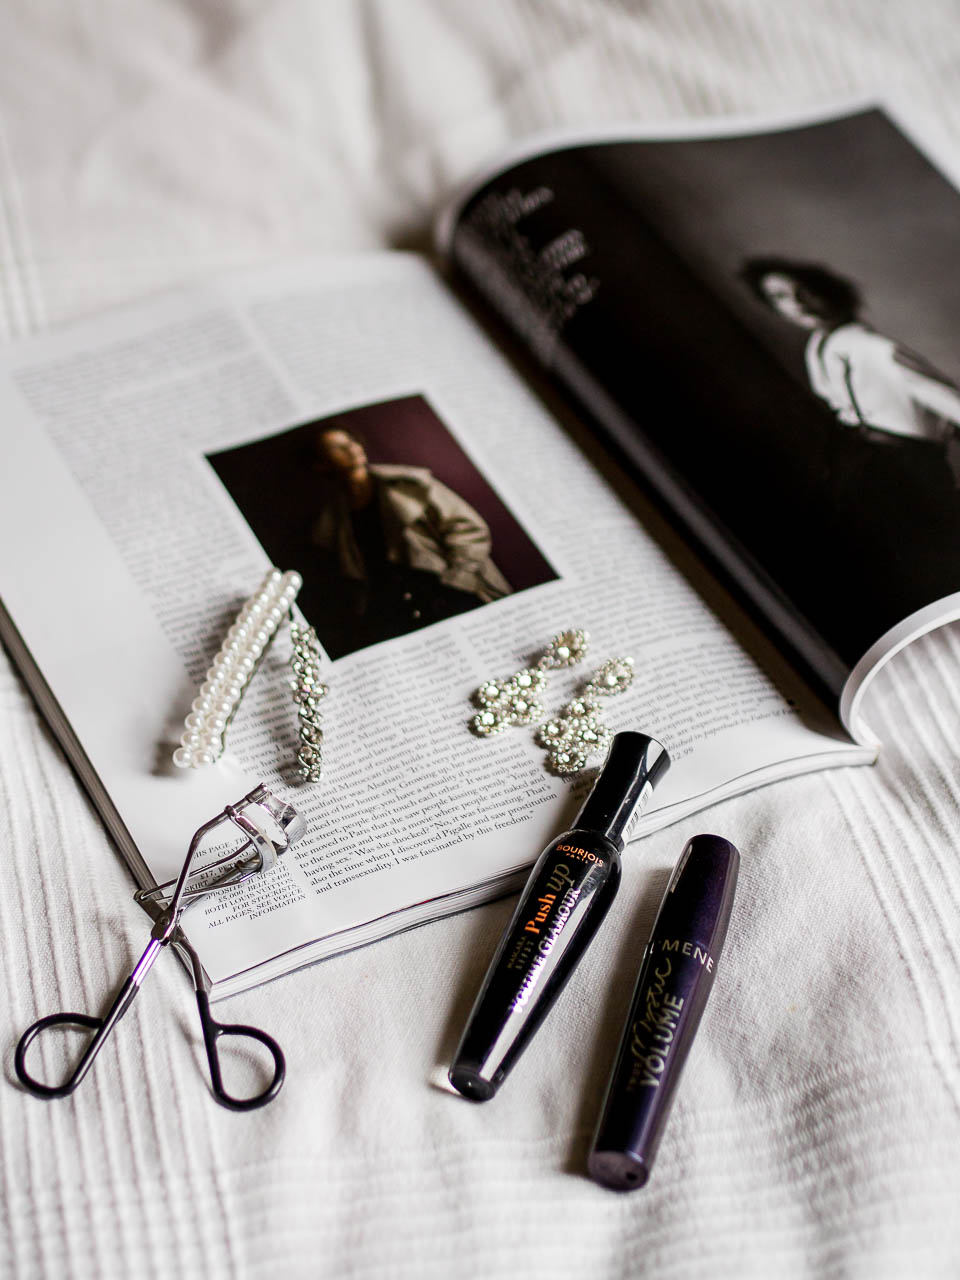 drugstore-make-up-mascara-favourites-lumene-bourjois